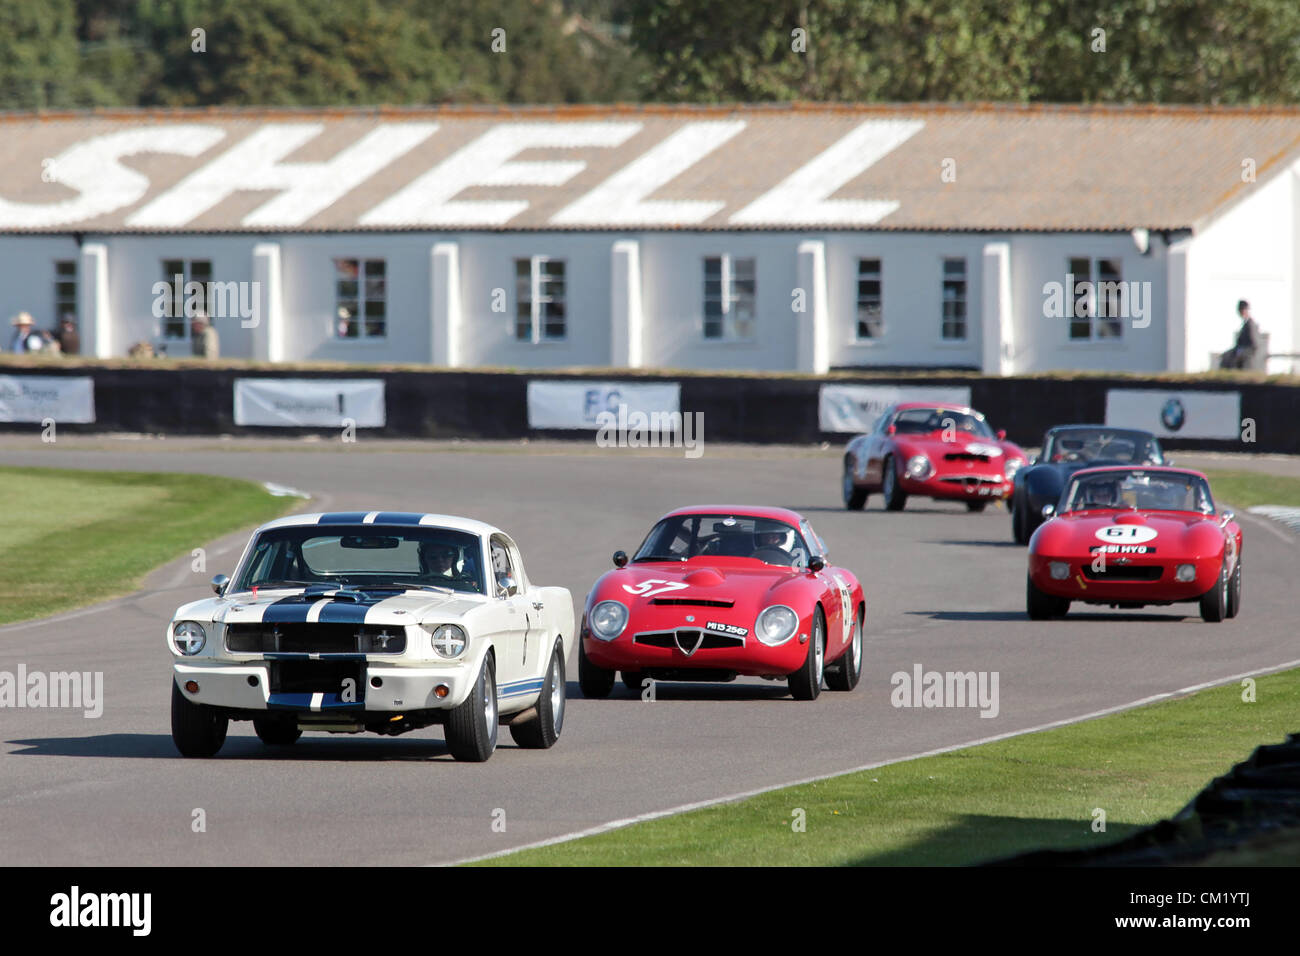 Goodwood Estate, Chichester, UK. 15th September 2012. Jeremy Cooke pictured driving a white 1966 Ford Shelby Mustang - Stock Image